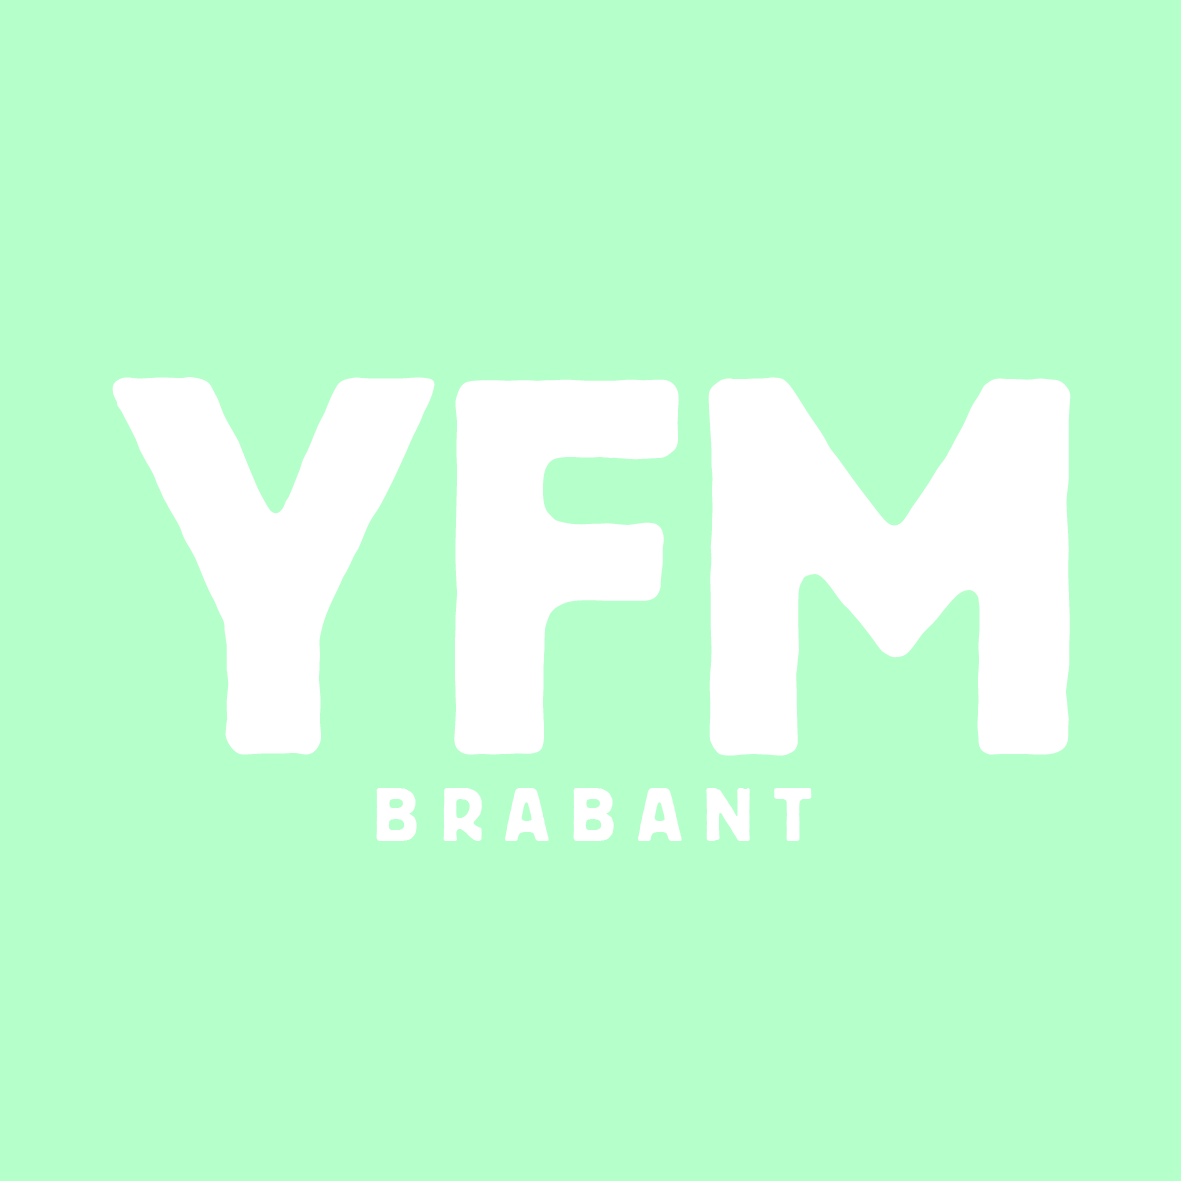 Youth Food Movement Brabant